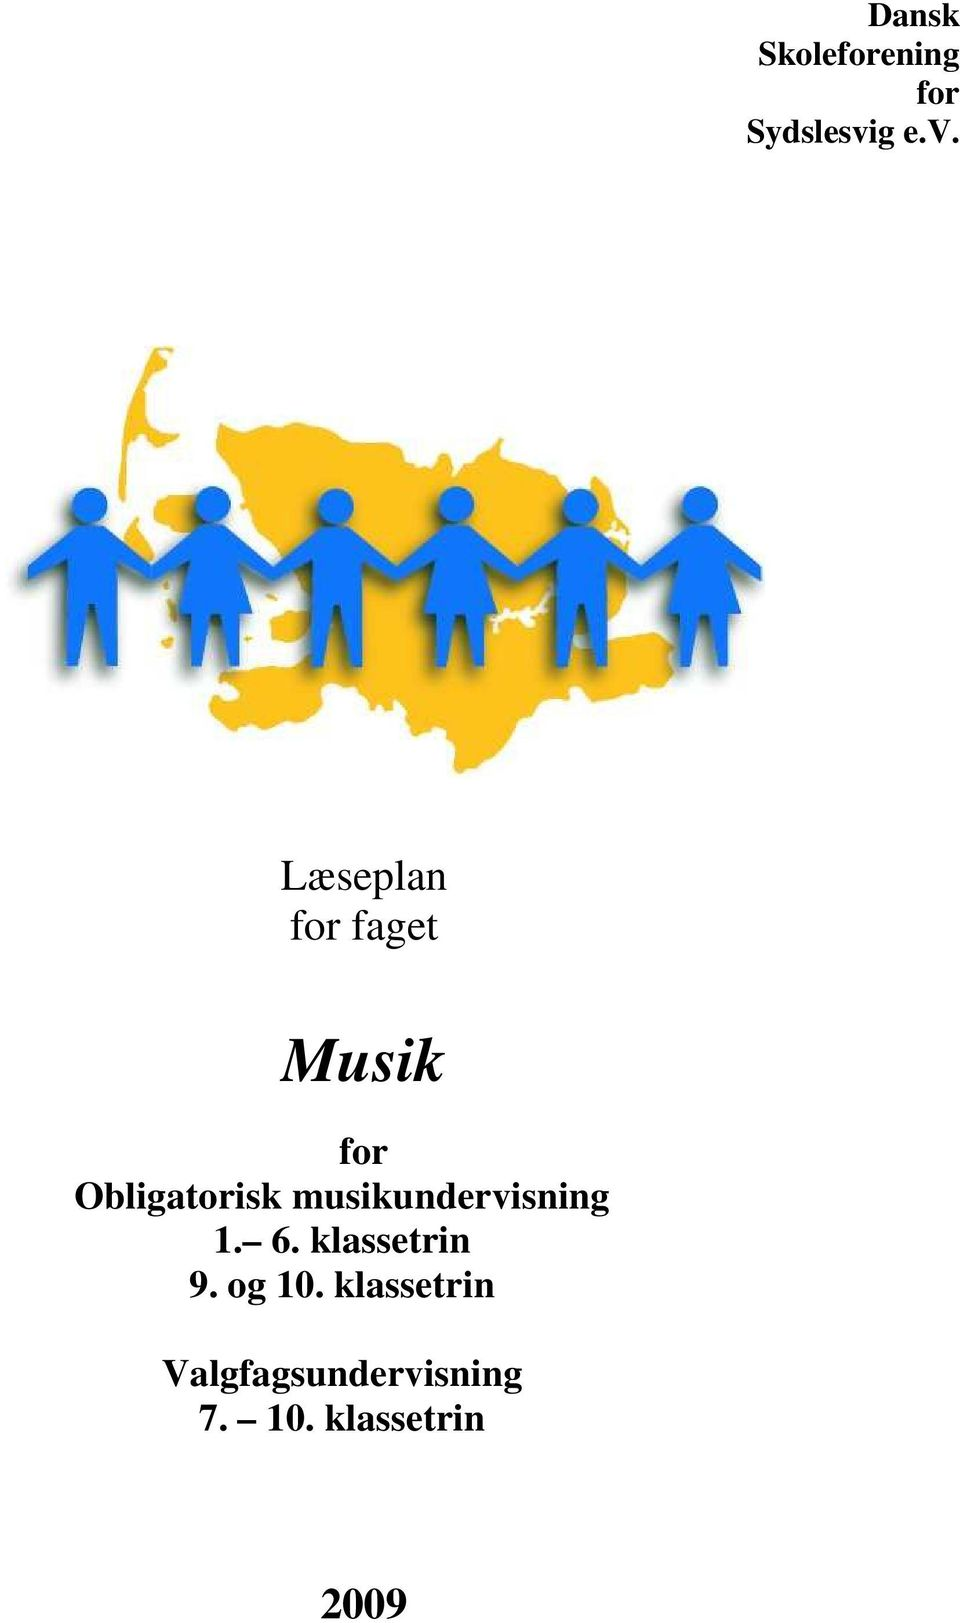 Læseplan for faget Musik for Obligatorisk